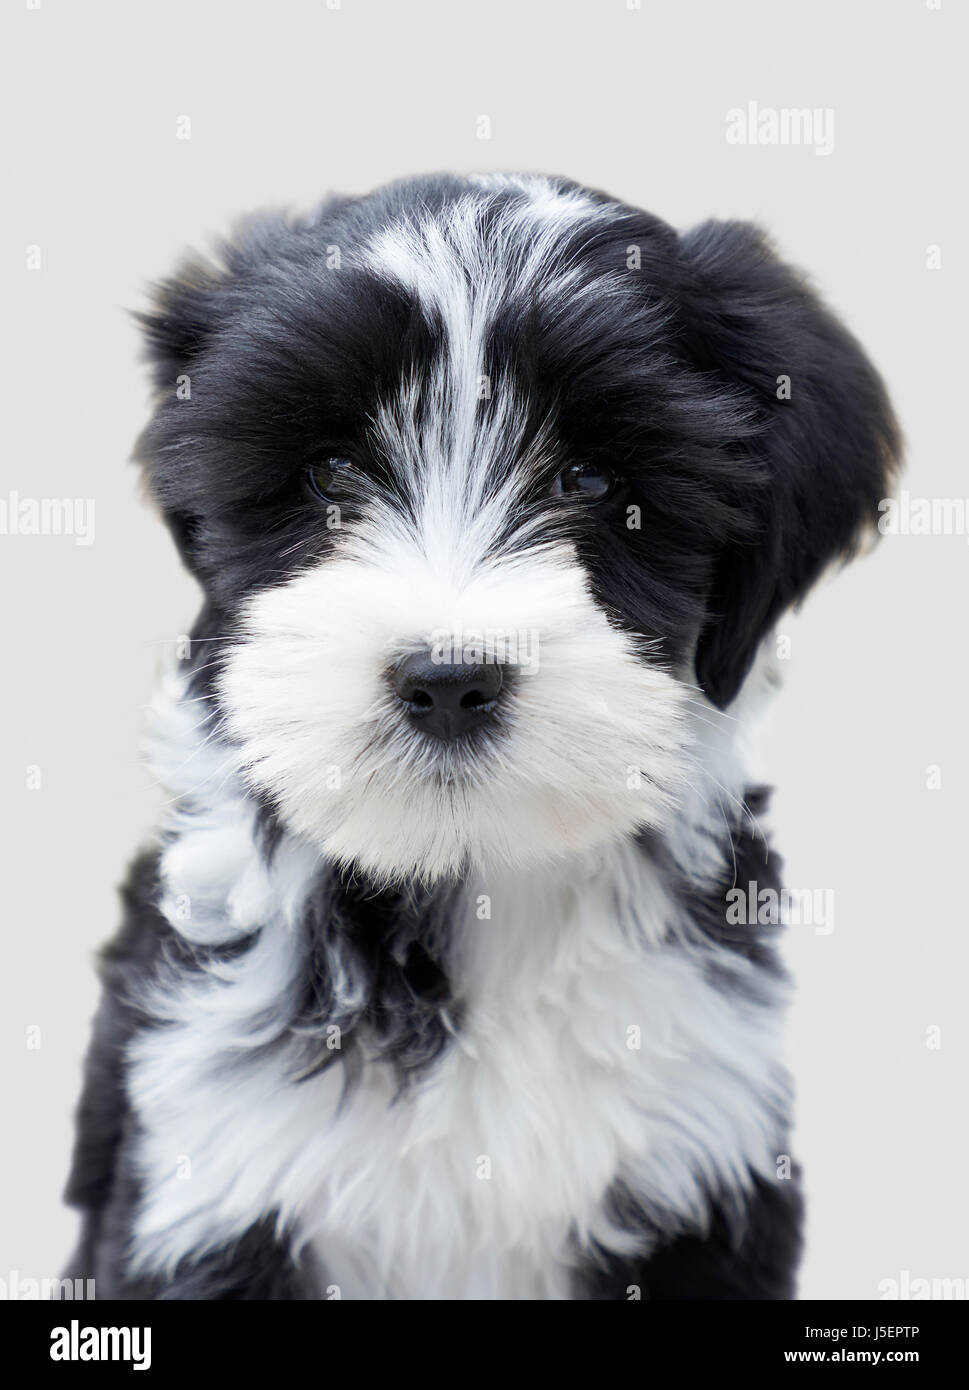 Sitting portrait of a black and white Tibetan Terrier puppy dog called Millie - Stock Image